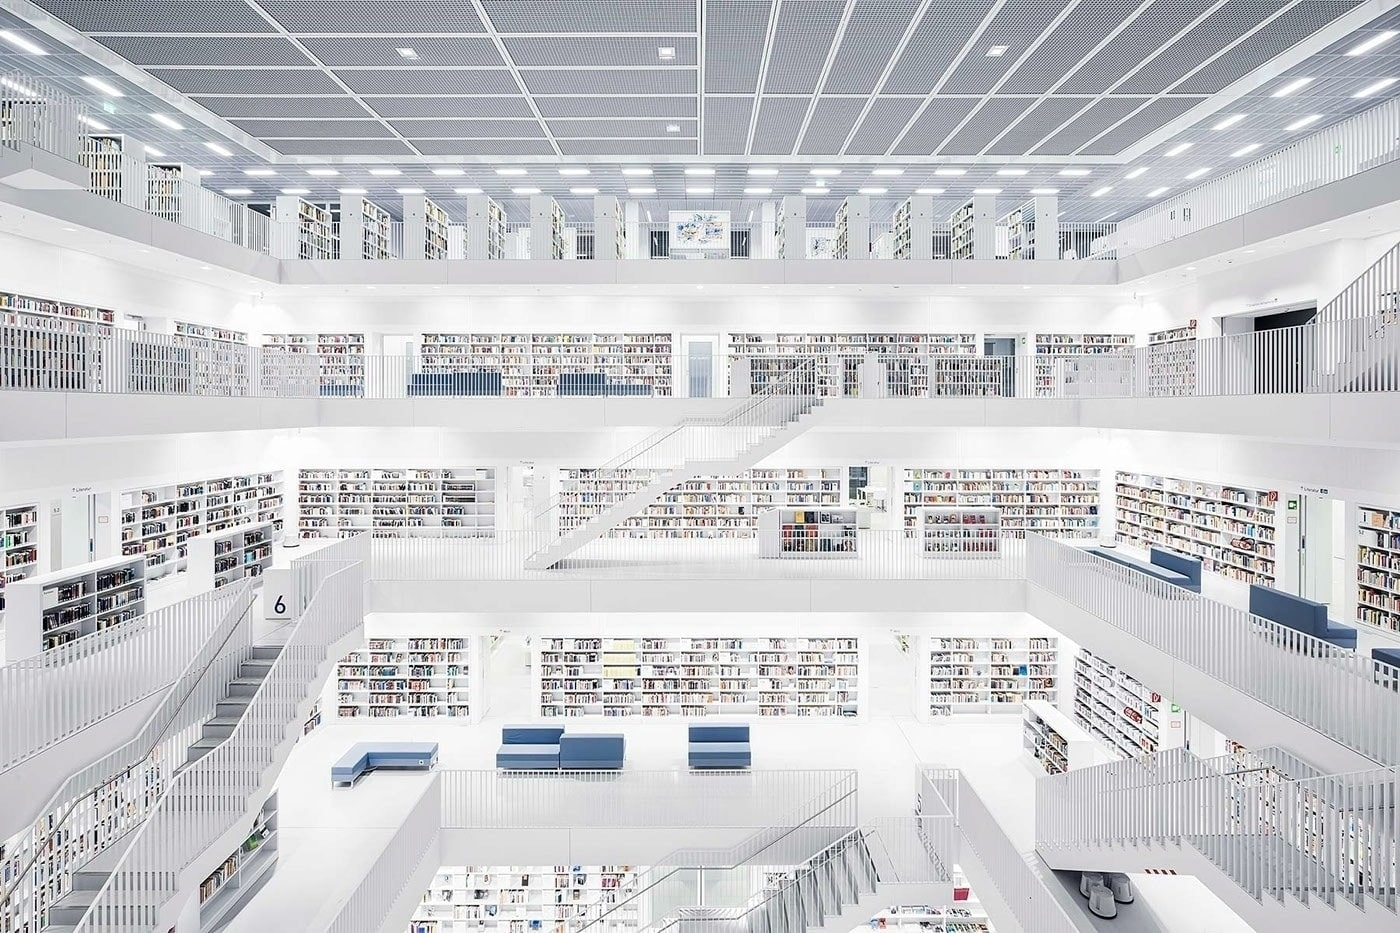 Gorgeous photos of libraries by Thibaud Poirier